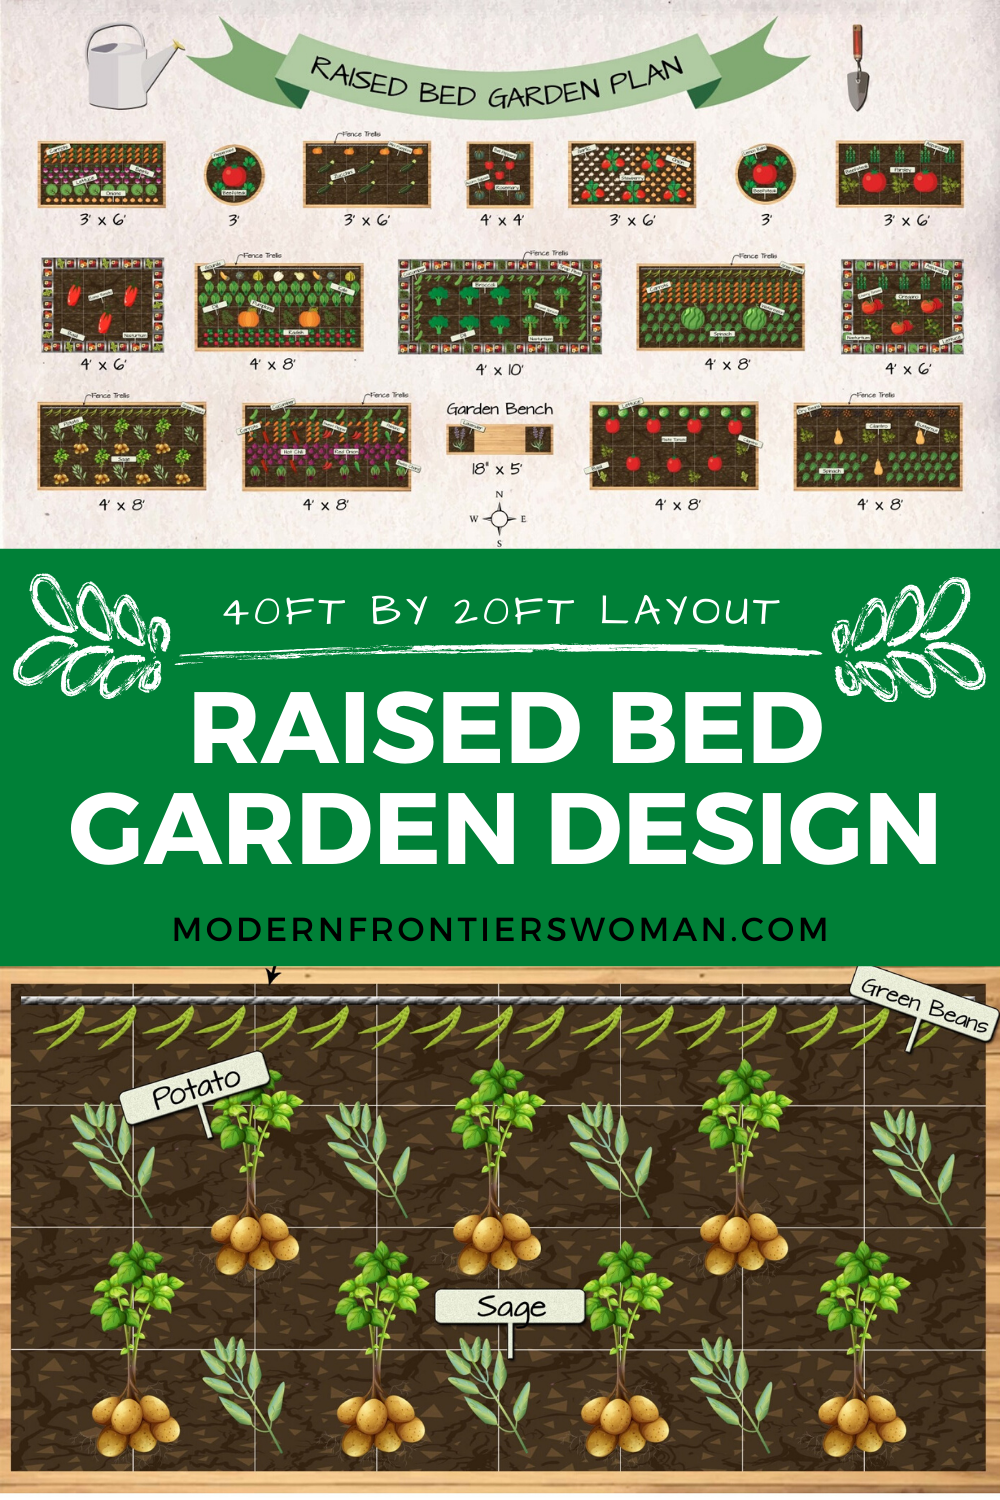 Raised Bed Vegetable Garden Plan | Modern Frontierswoman